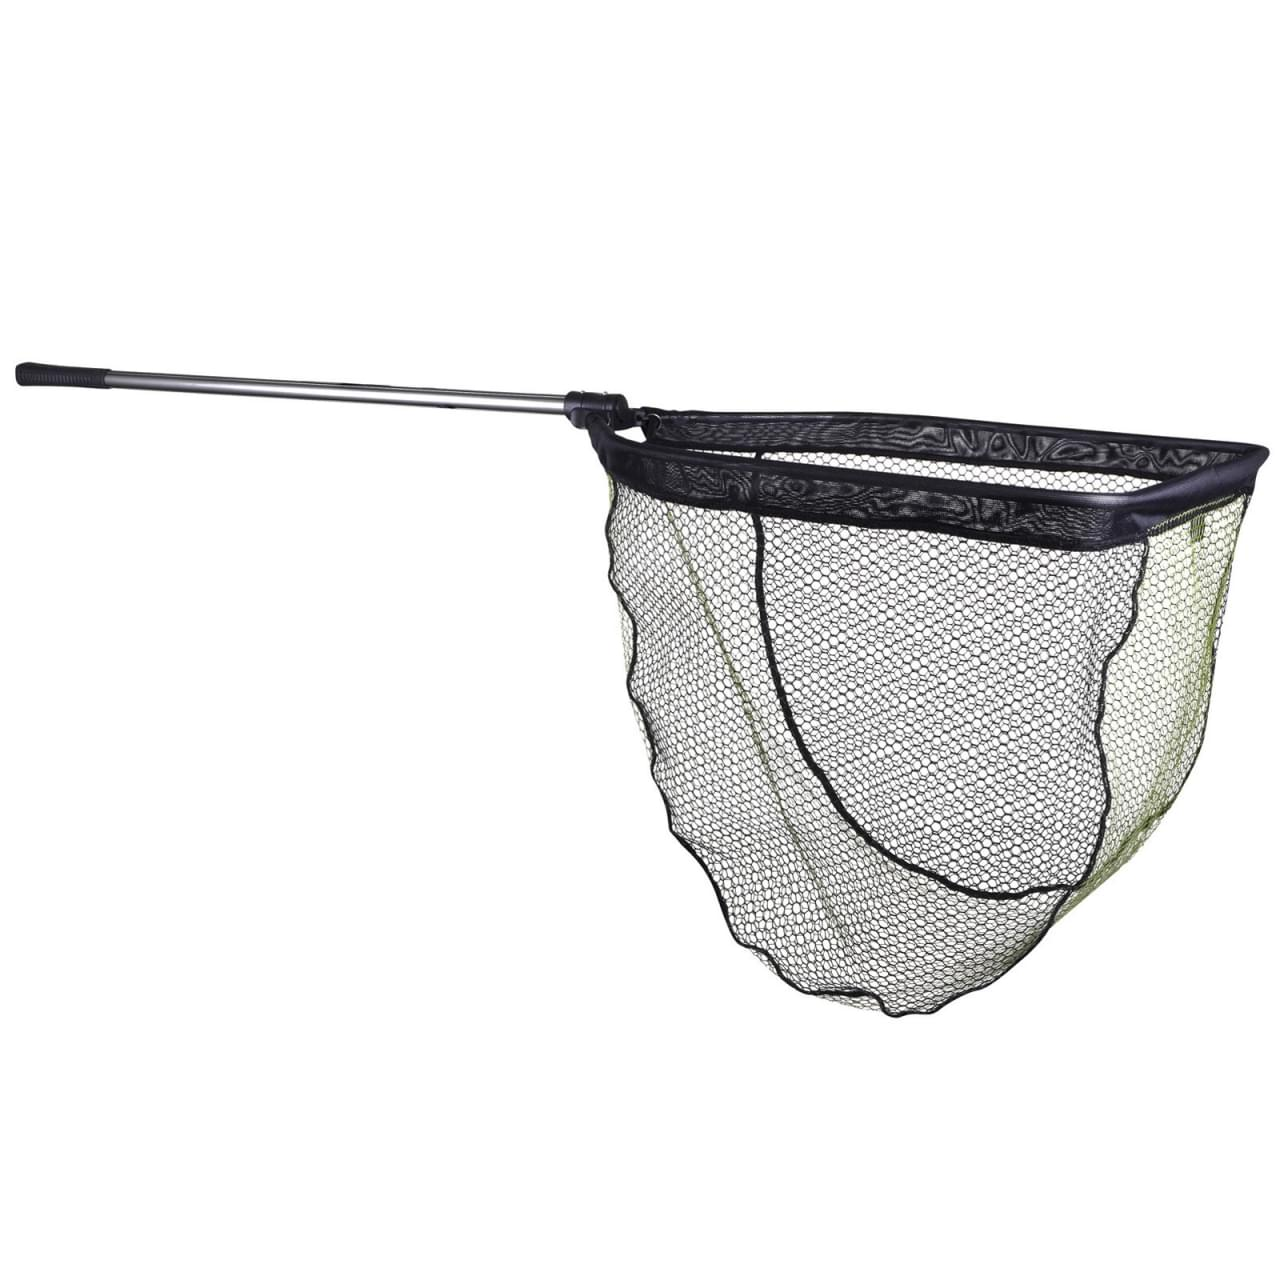 Spro Predator Folding Net